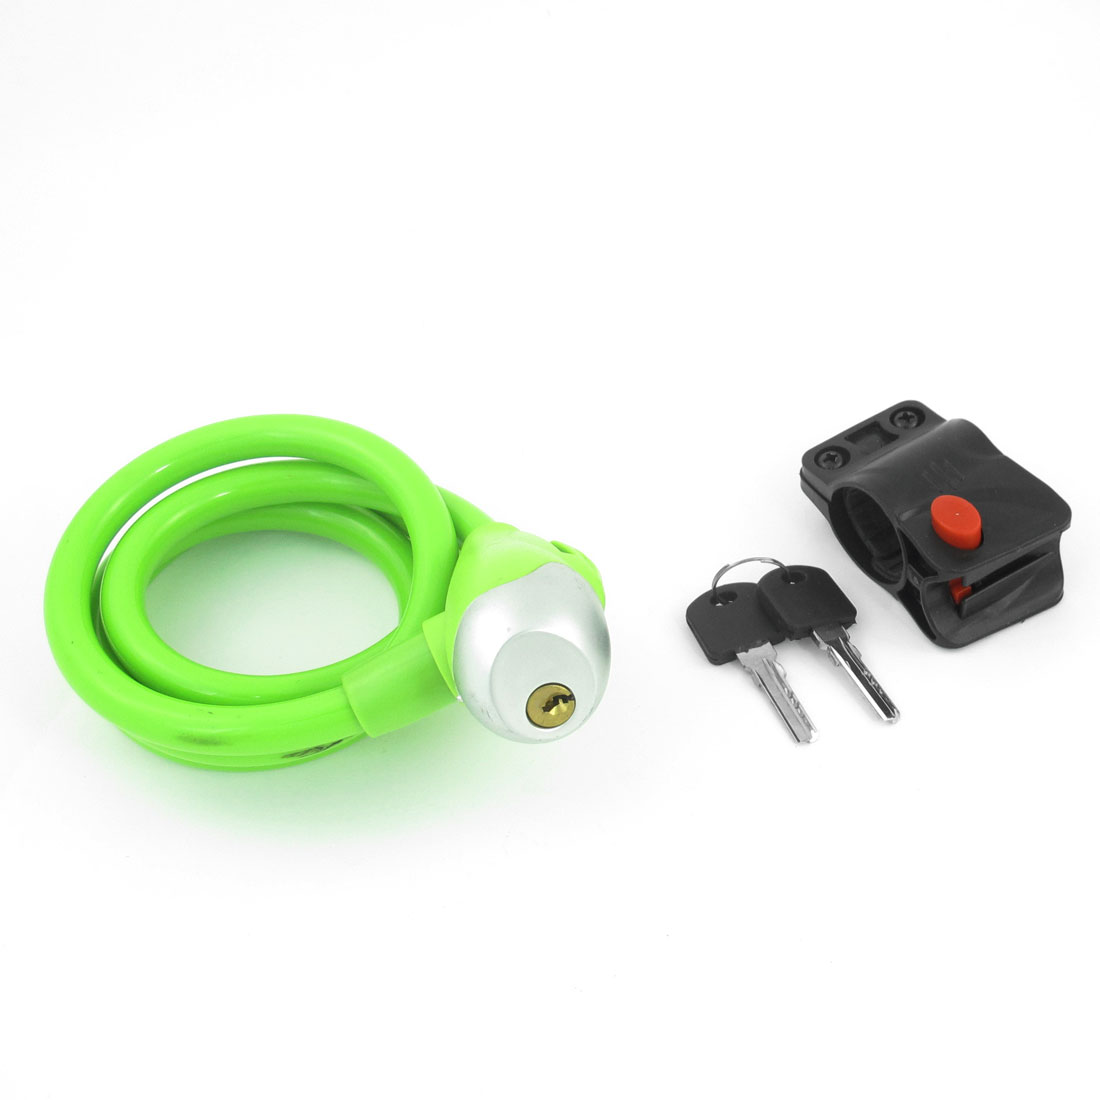 Green Plastic Coated Metal Flexible Cable Bicycle Lock w 2 Keys